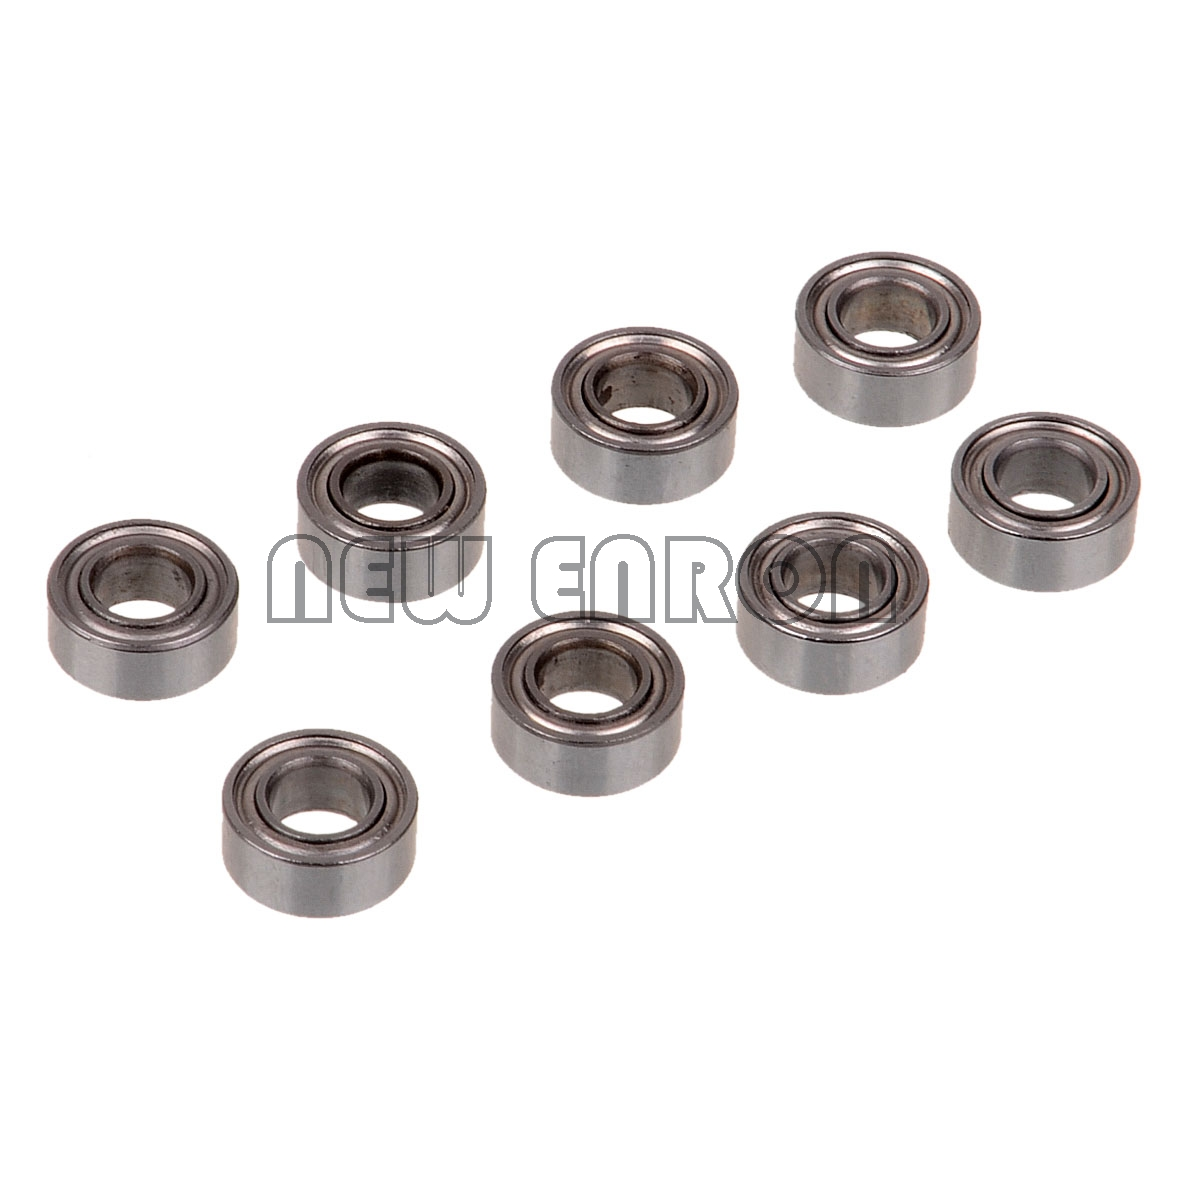 NEW ENRON 02139 8P Ball Bearing 10*5*4 HSP Racing 1/10 4WD On/Off-Road Car Monster Truck